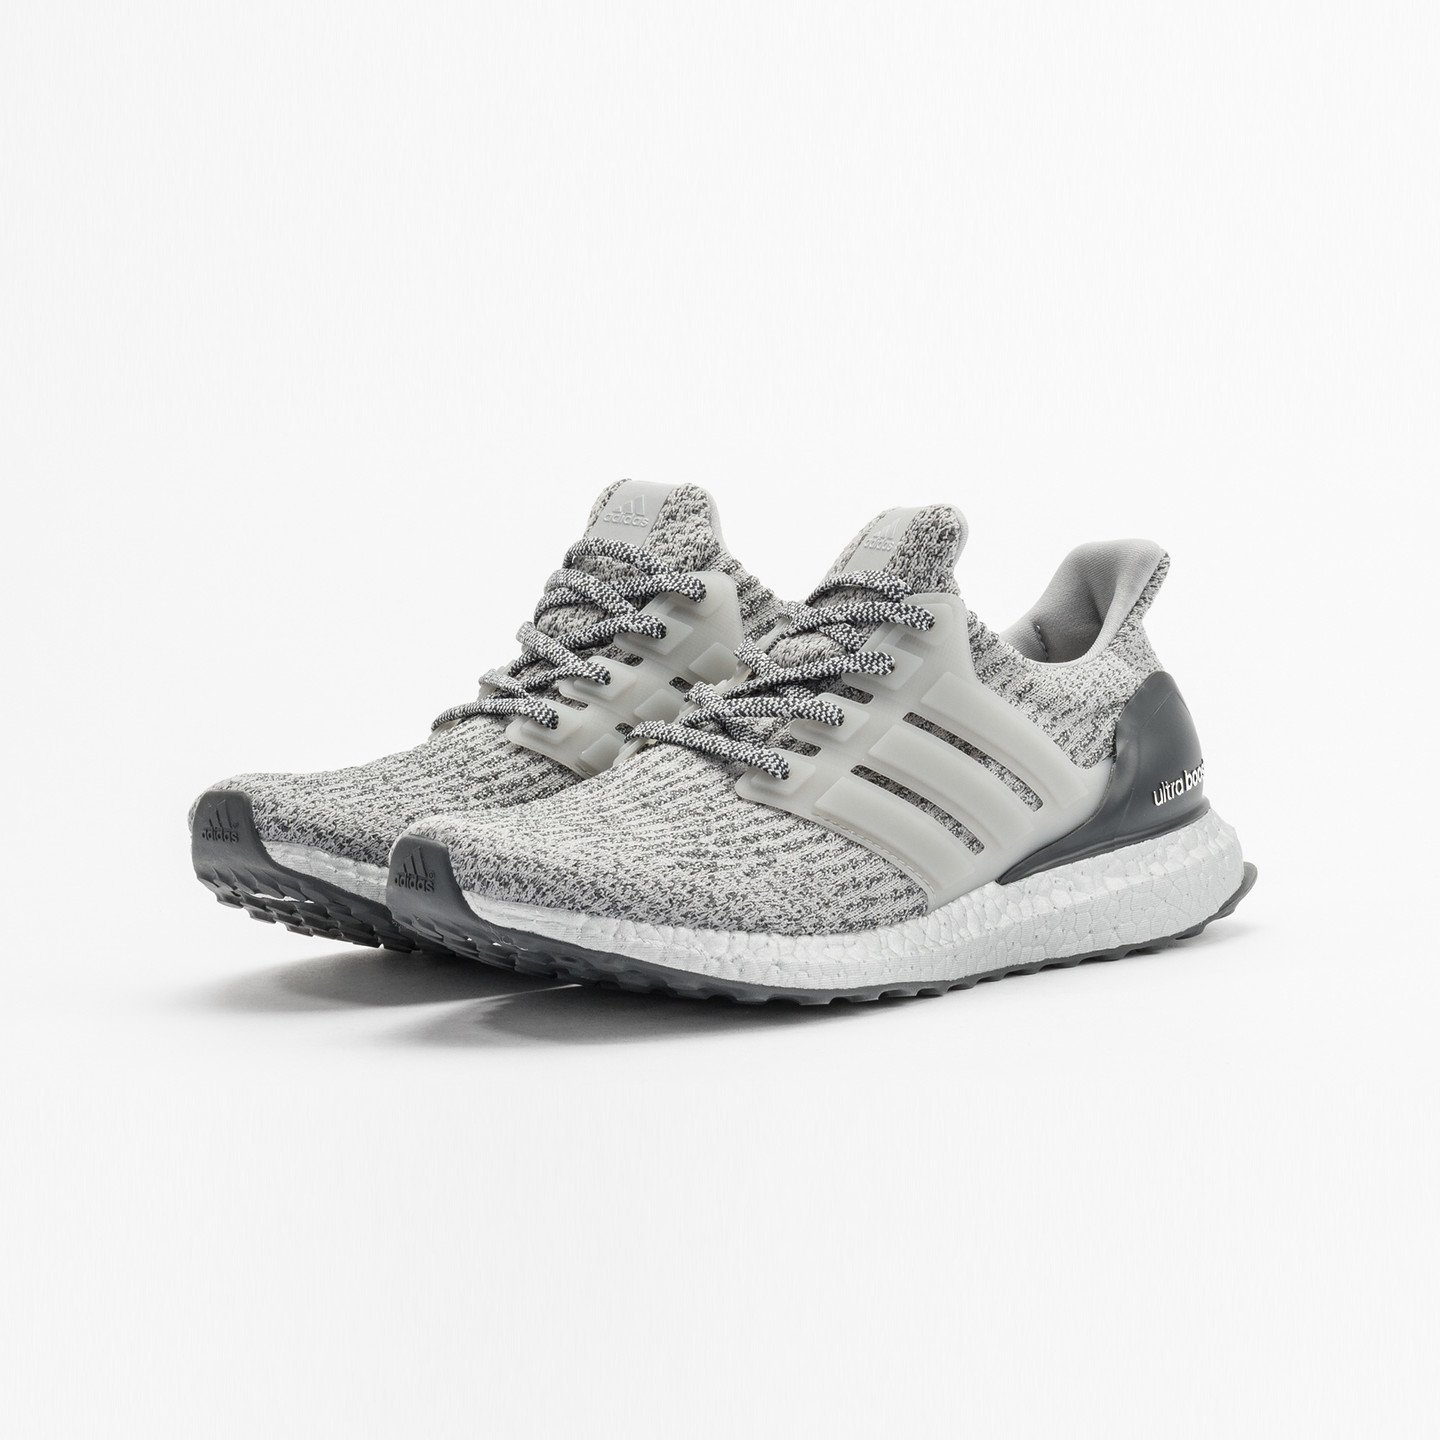 Adidas Ultra Boost 3.0 'Super Bowl' Silver Grey BA8143-42